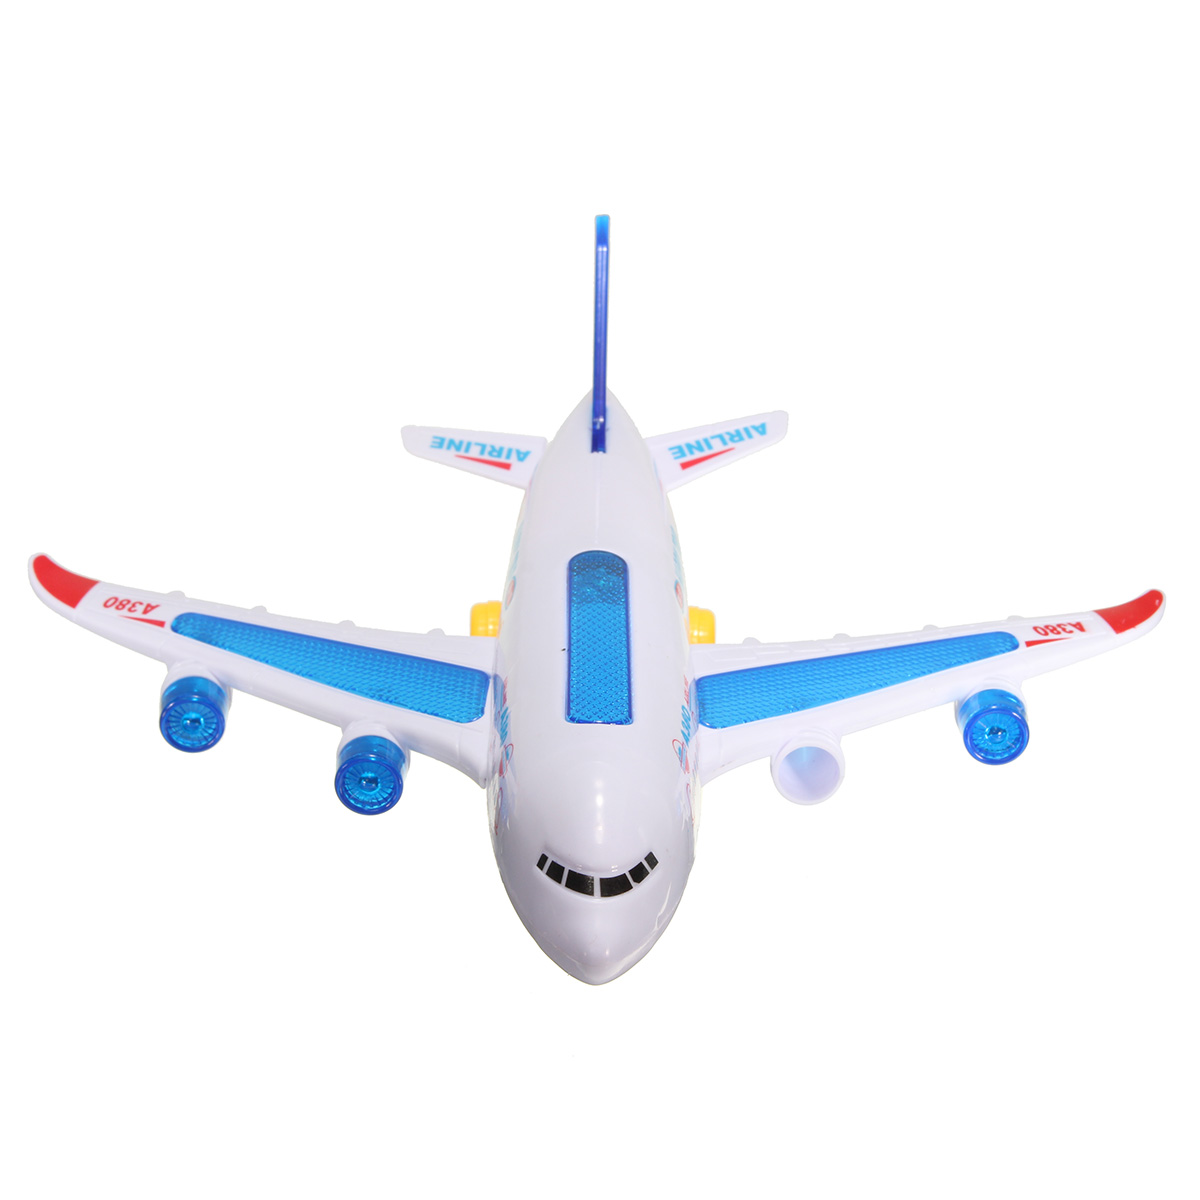 Electric Airbus Airplane plane Shuttle Moving Musical Flashing Sound Model Toy